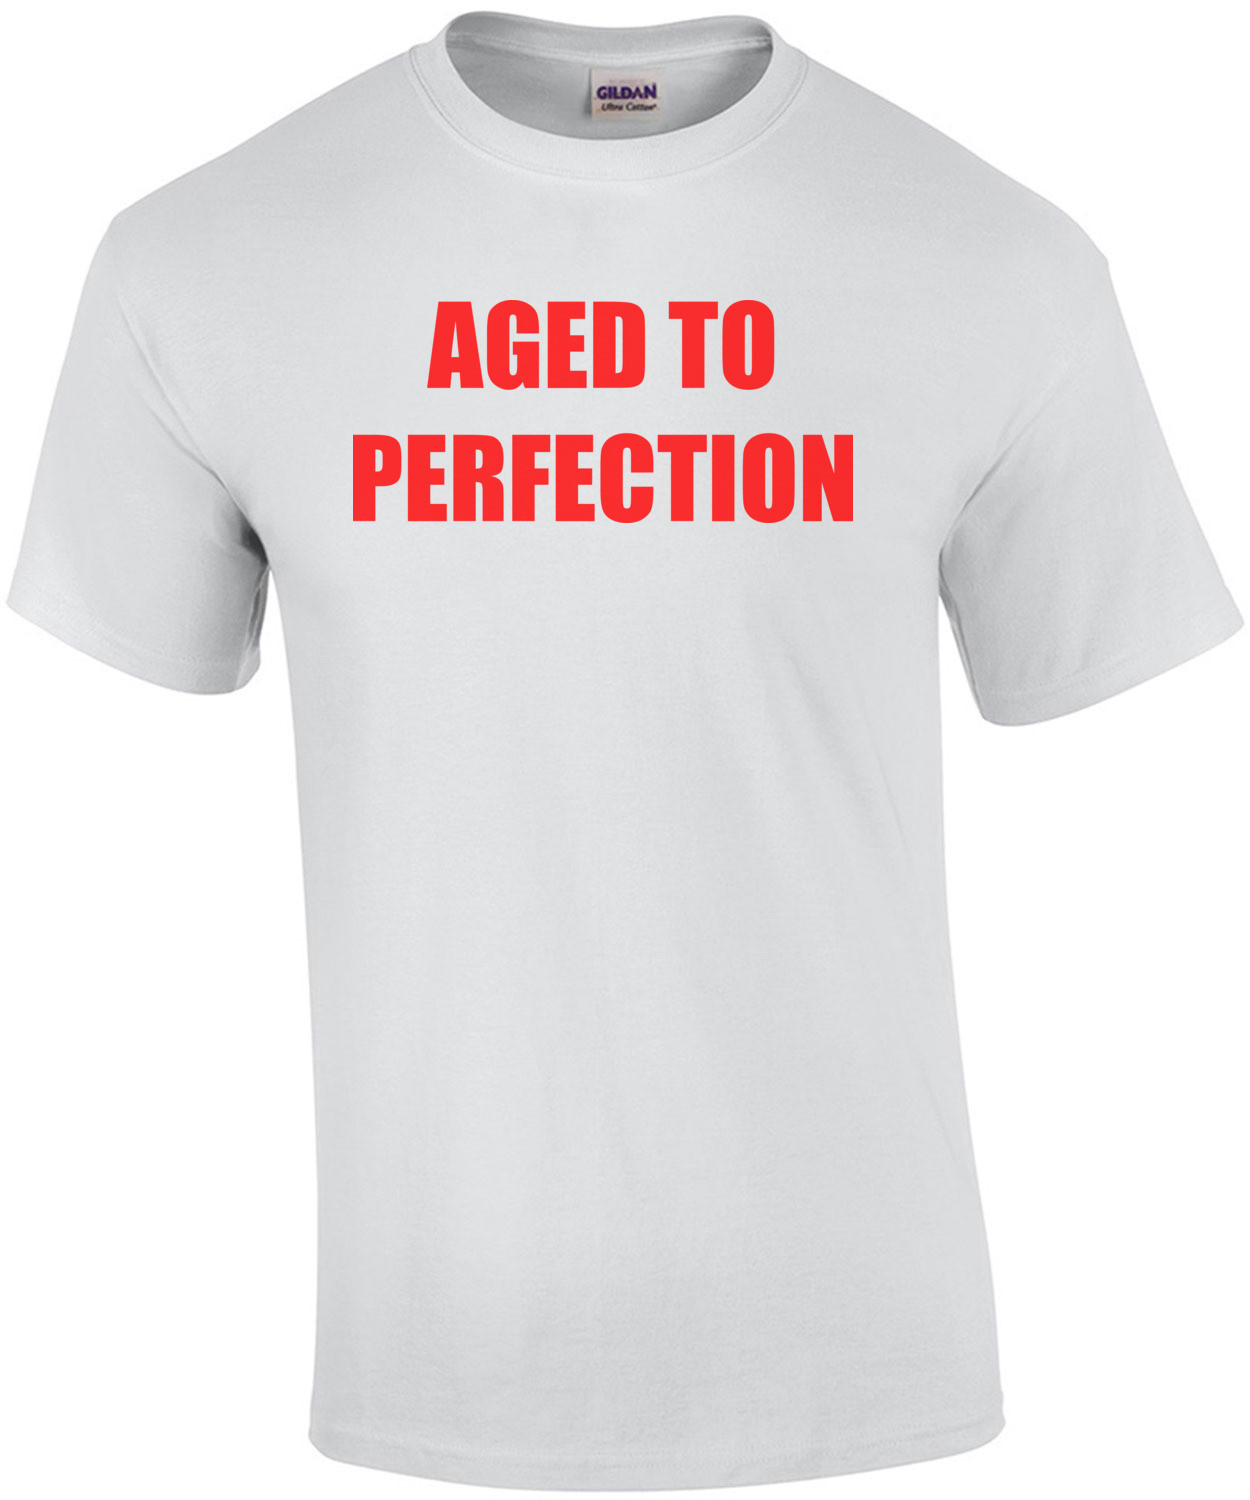 AGED TO PERFECTION - Happy Birthday Shirt